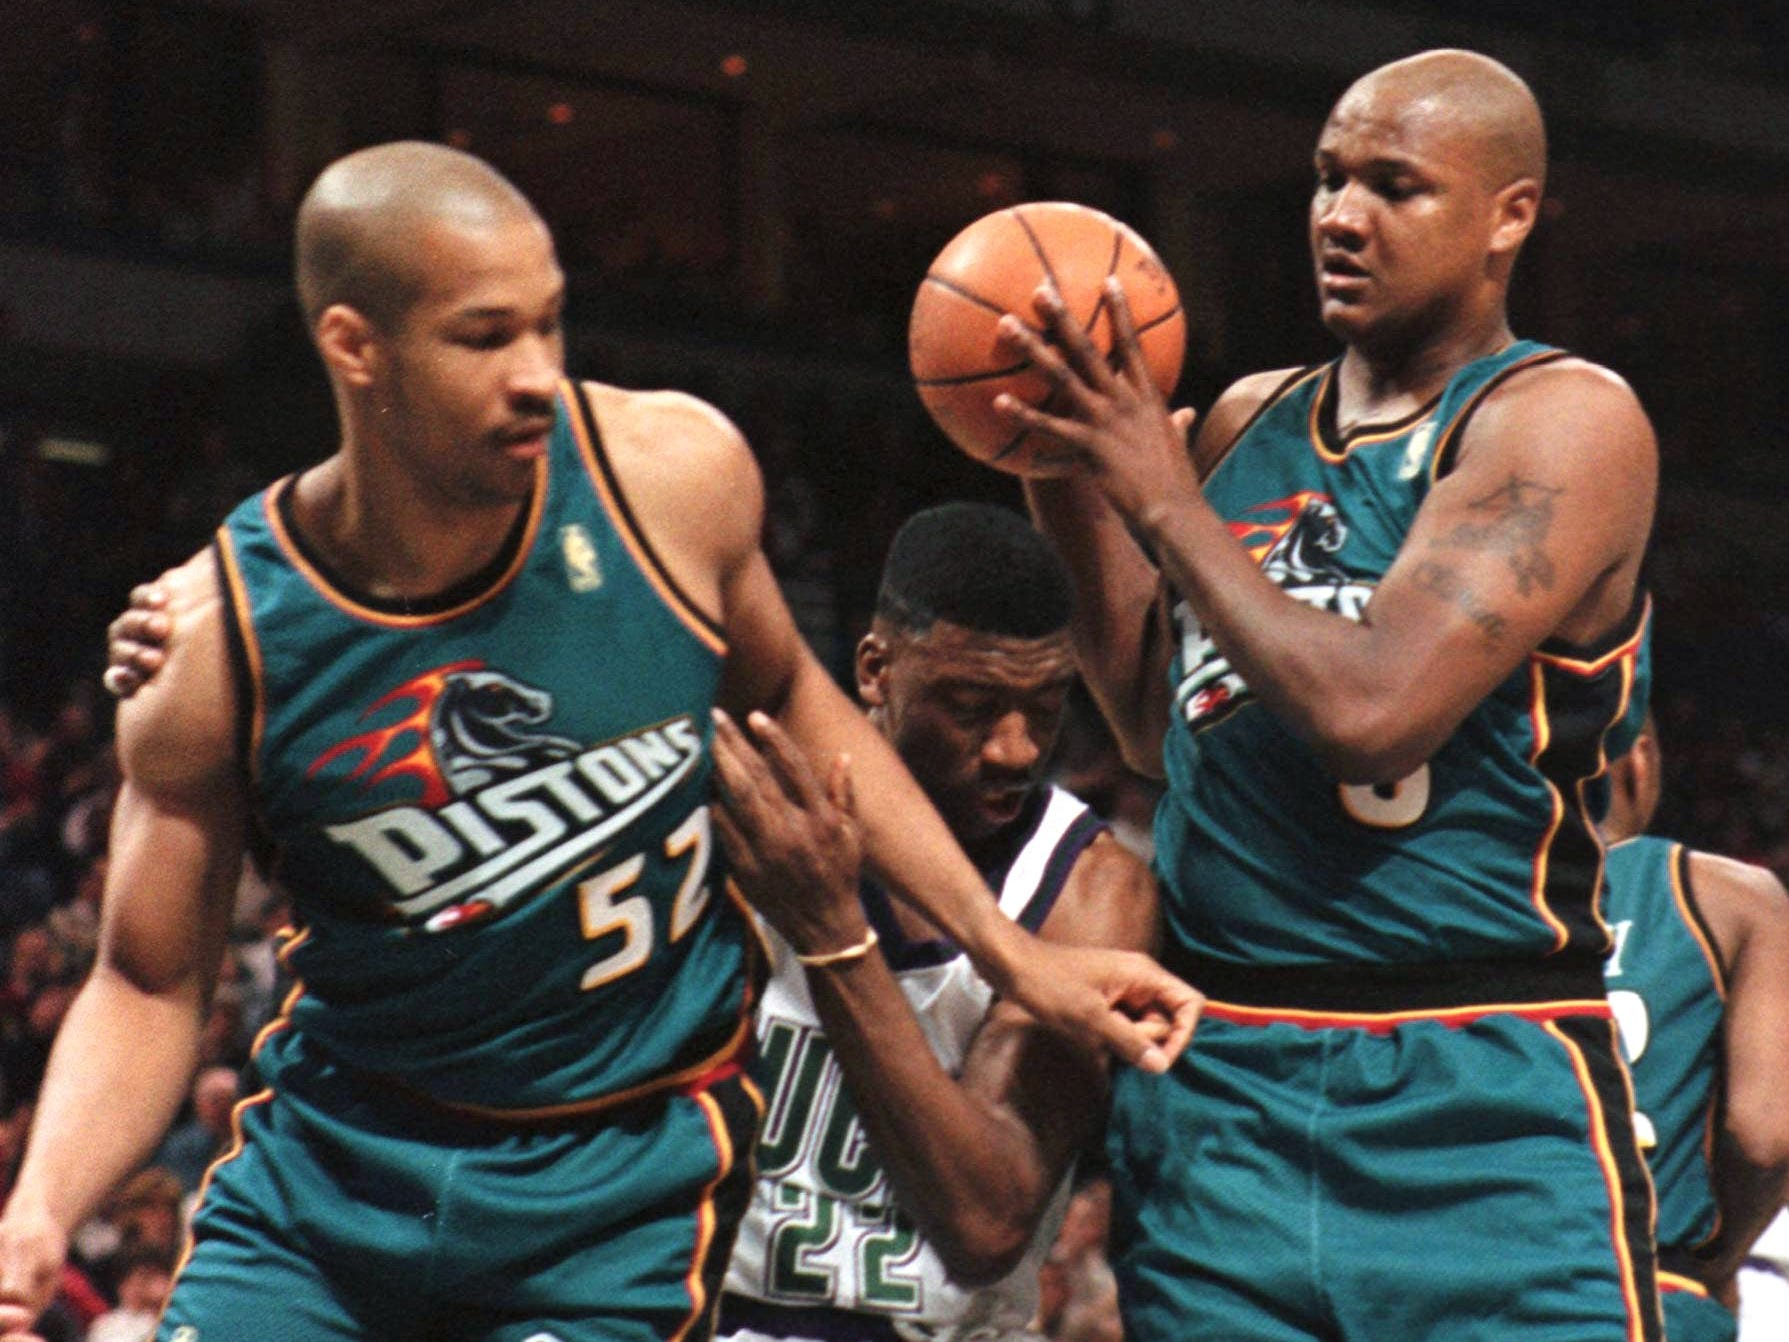 Teal sure was popular in the 1990s, as Don Reid (52) and Terry Mills can attest about the 1996 Detroit Pistons uniform.